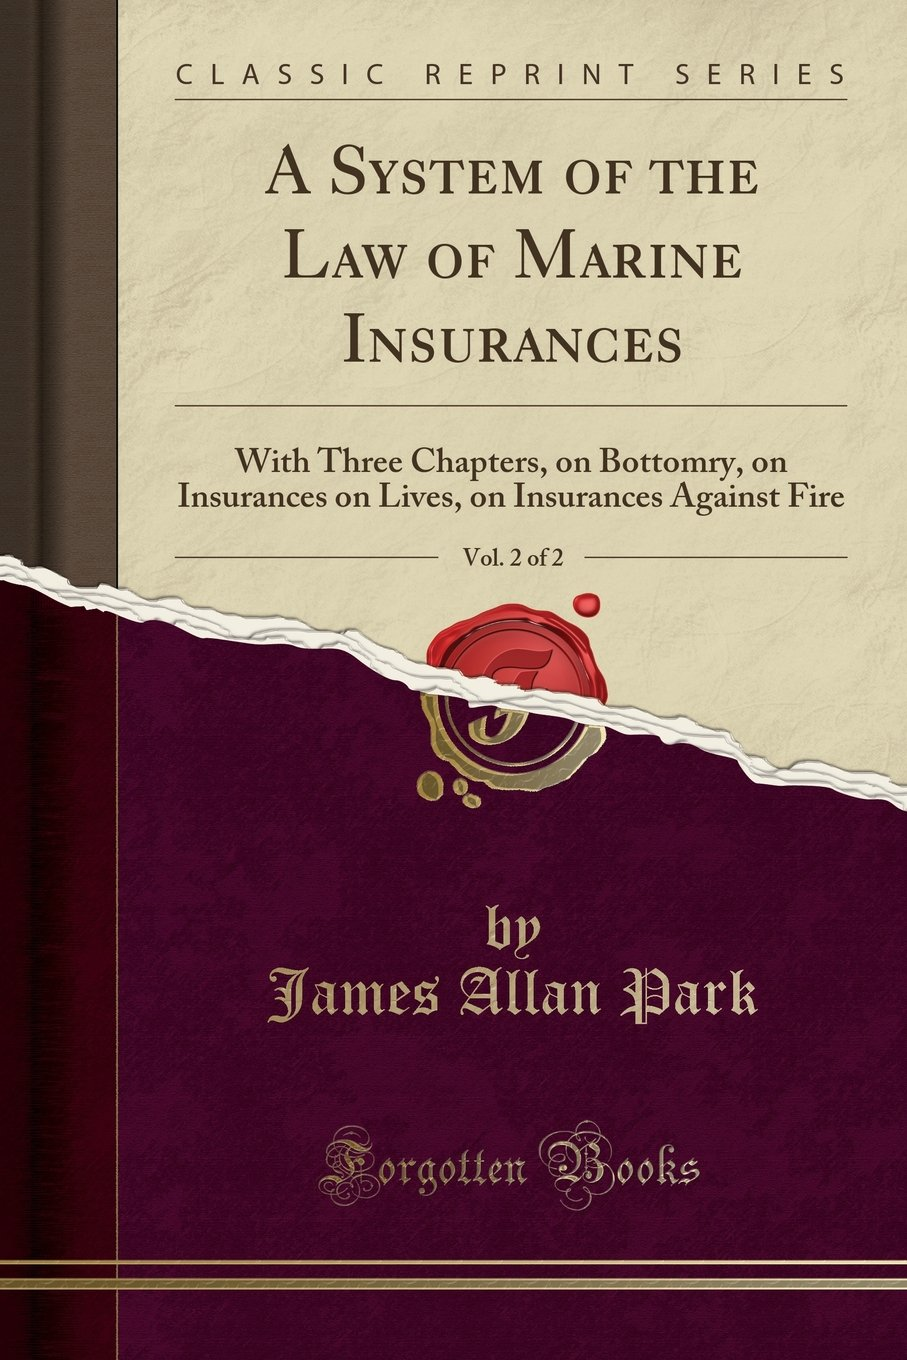 Download A System of the Law of Marine Insurances, Vol. 2 of 2: With Three Chapters, on Bottomry, on Insurances on Lives, on Insurances Against Fire (Classic Reprint) pdf epub